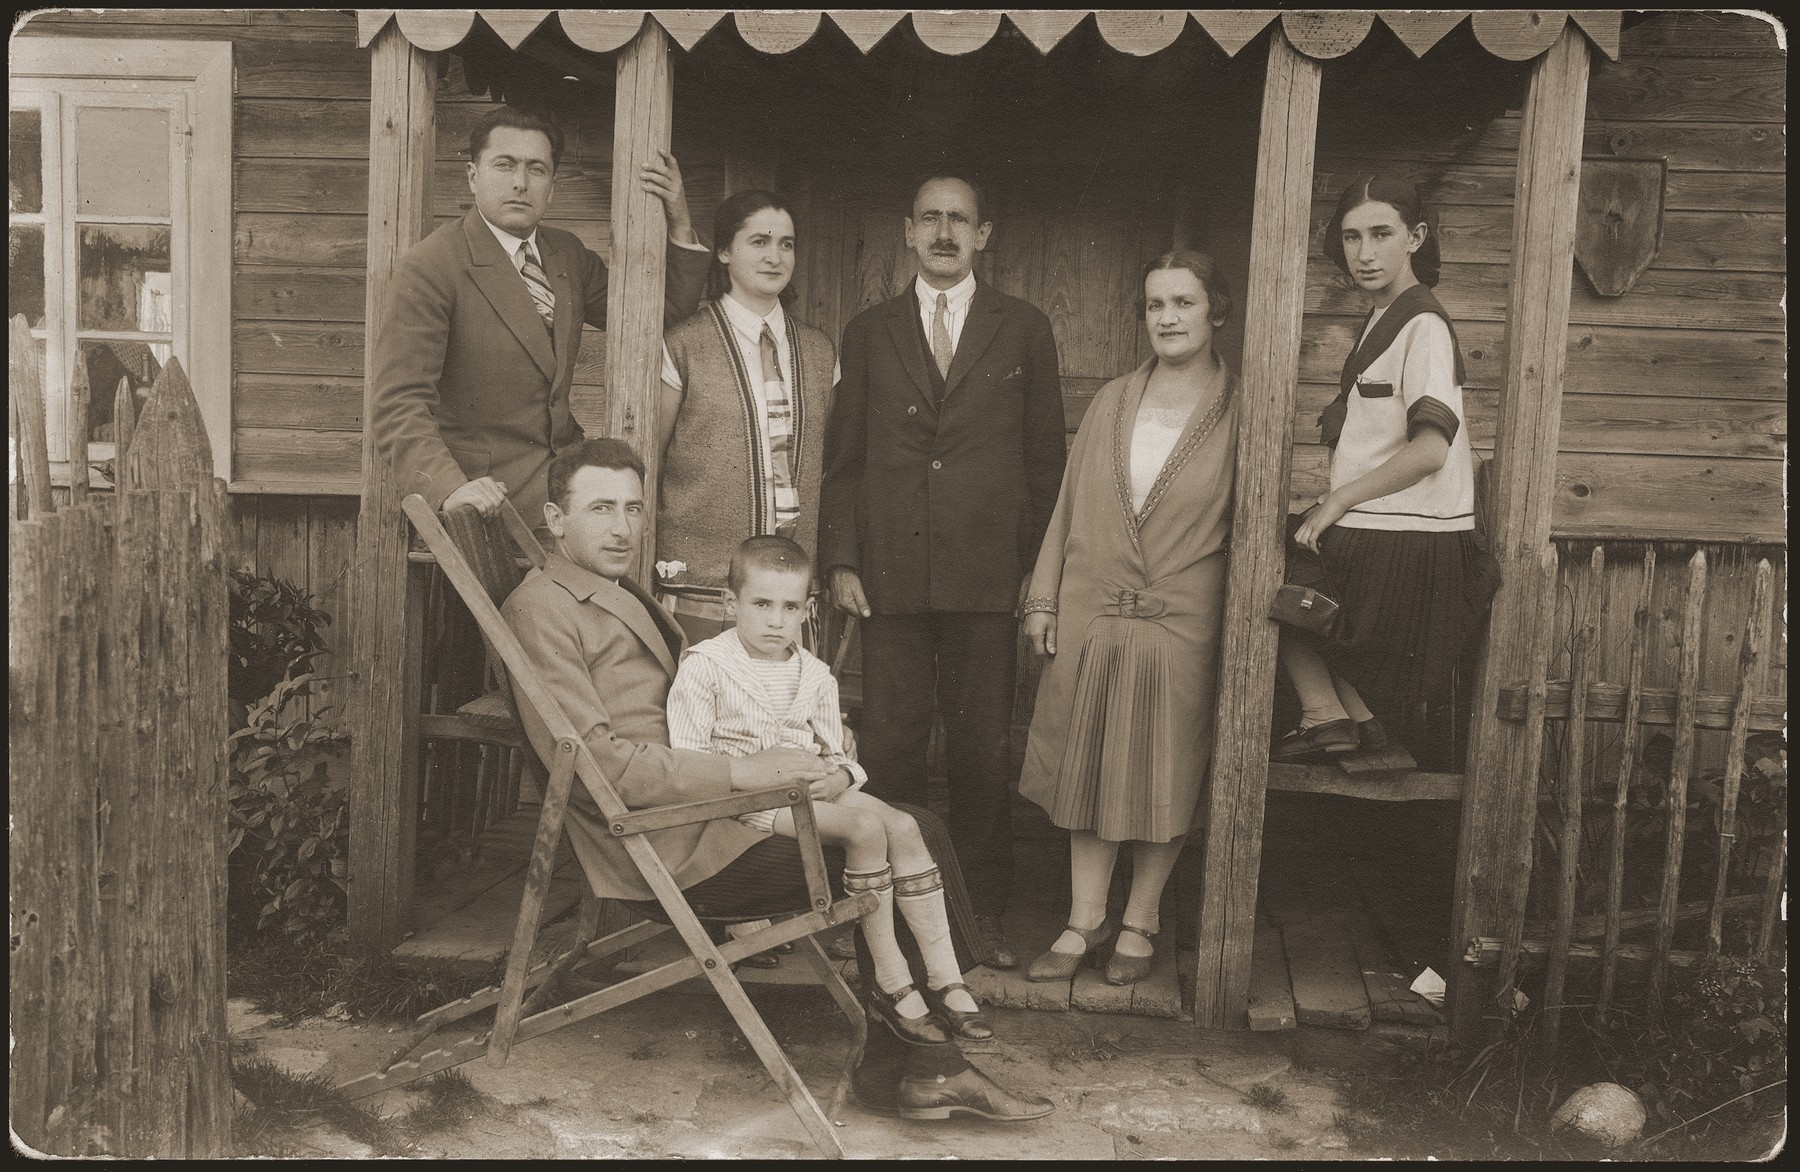 The Dworzecki family poses on the porch of their summer cottage in Molczadz.  Pictured standing from right to left are: Wita, Helena and Jakub Dworzecki.  Lulek Dworzecki sits in the lap of an unidentified relative.